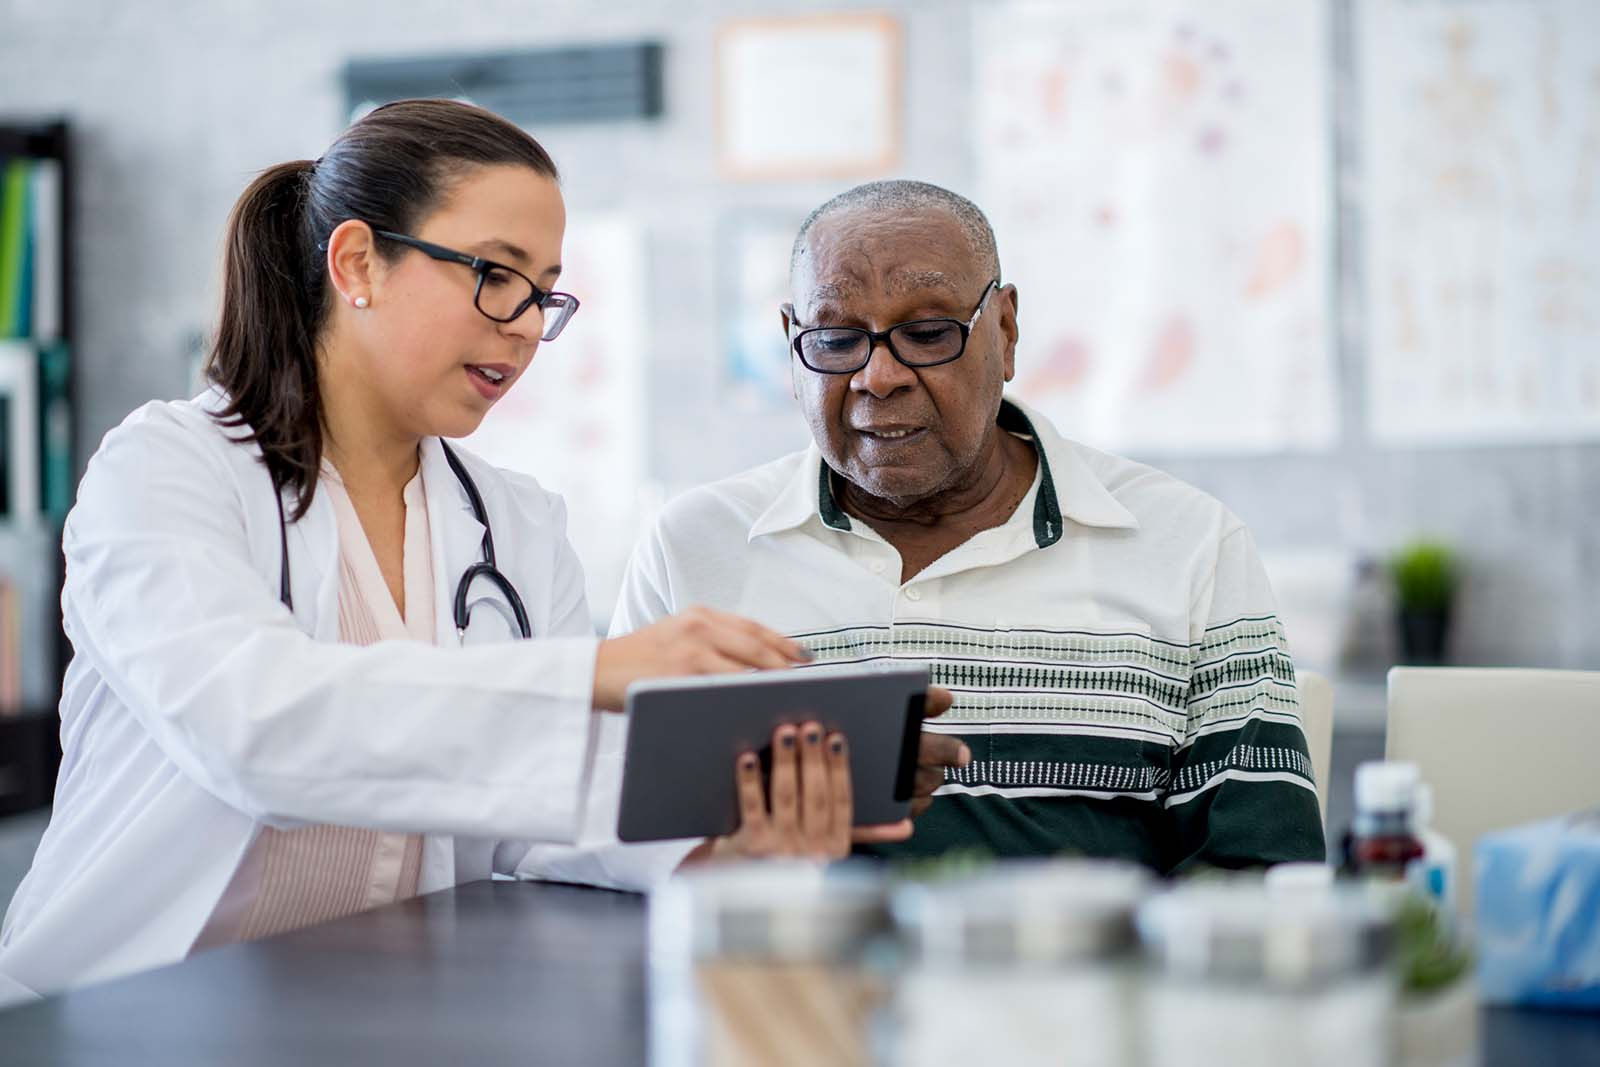 Medicare Annual Wellness Visits are underused